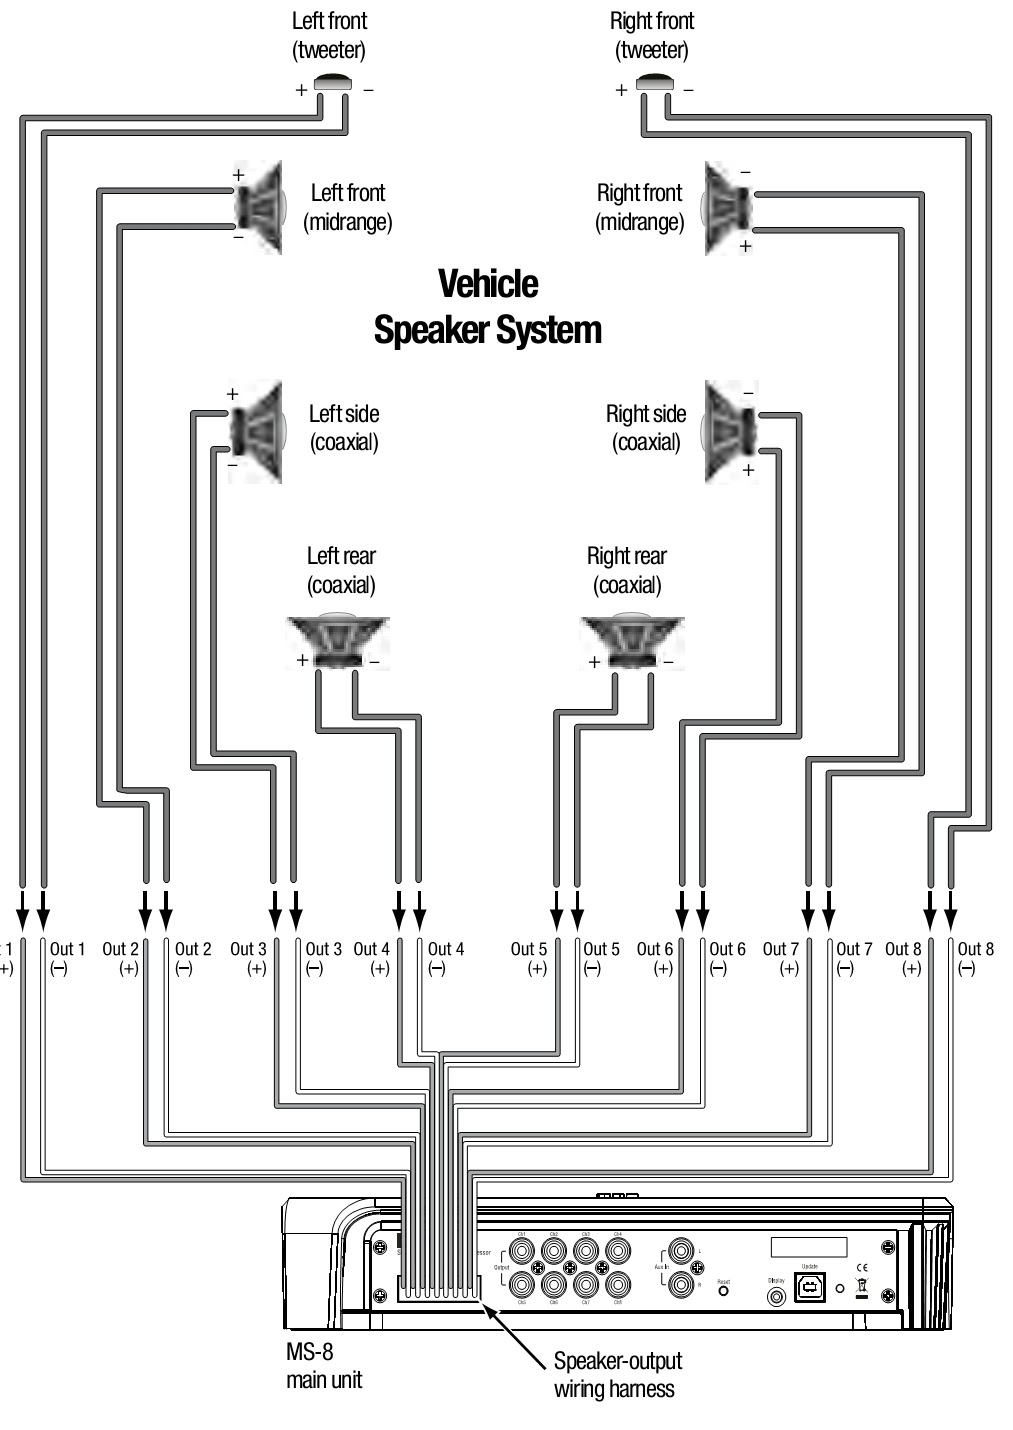 small resolution of 6 speakers 4 channel amp wiring diagram wiring diagrams lol 5 channel amp wiring diagram 6